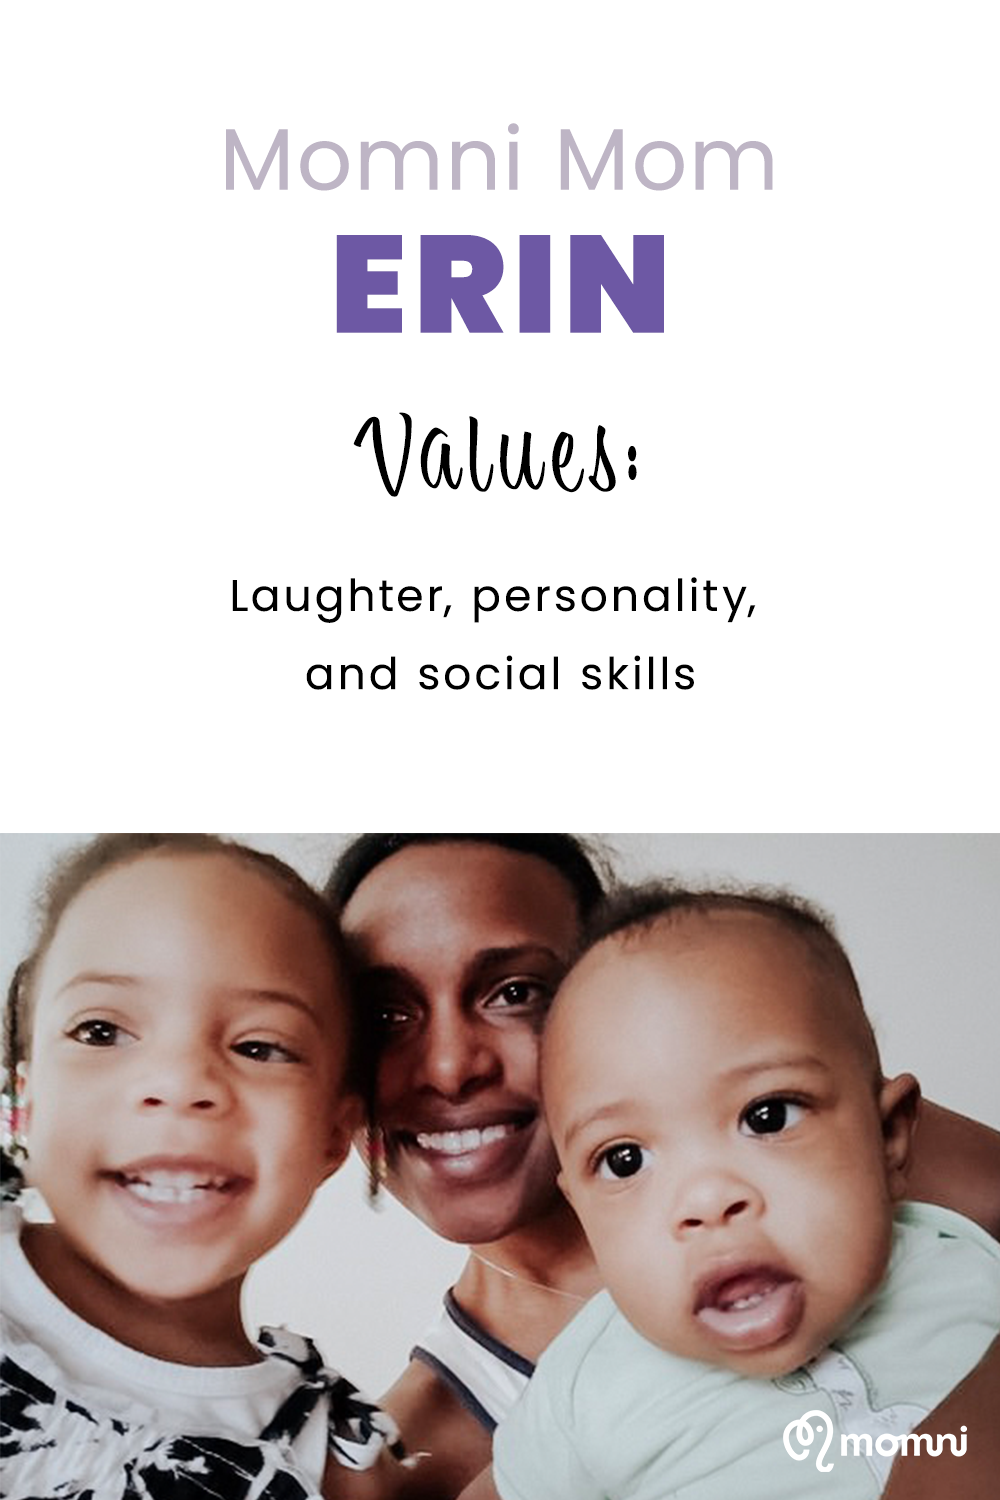 Our Home Little Giggles Childminding: Meet Erin, One Of Our Amazing #Momni Moms From Calhoun